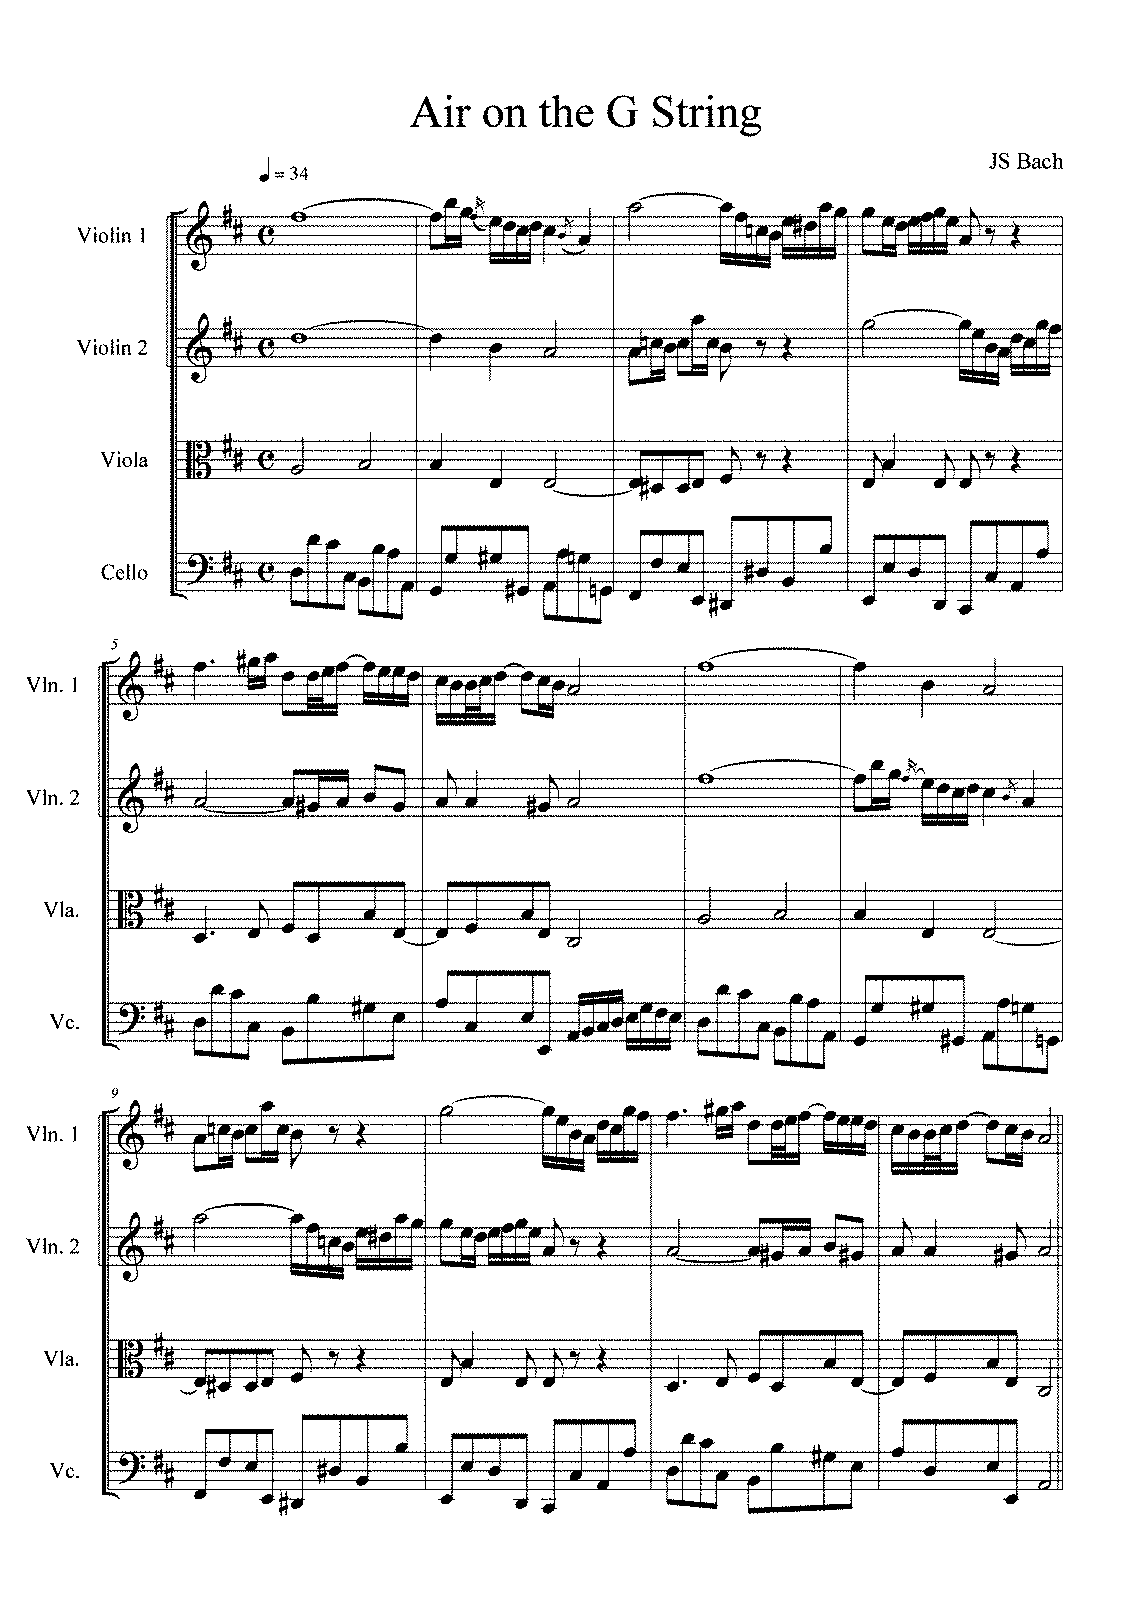 PMLP100008-Air on the g string - Complete Score.pdf